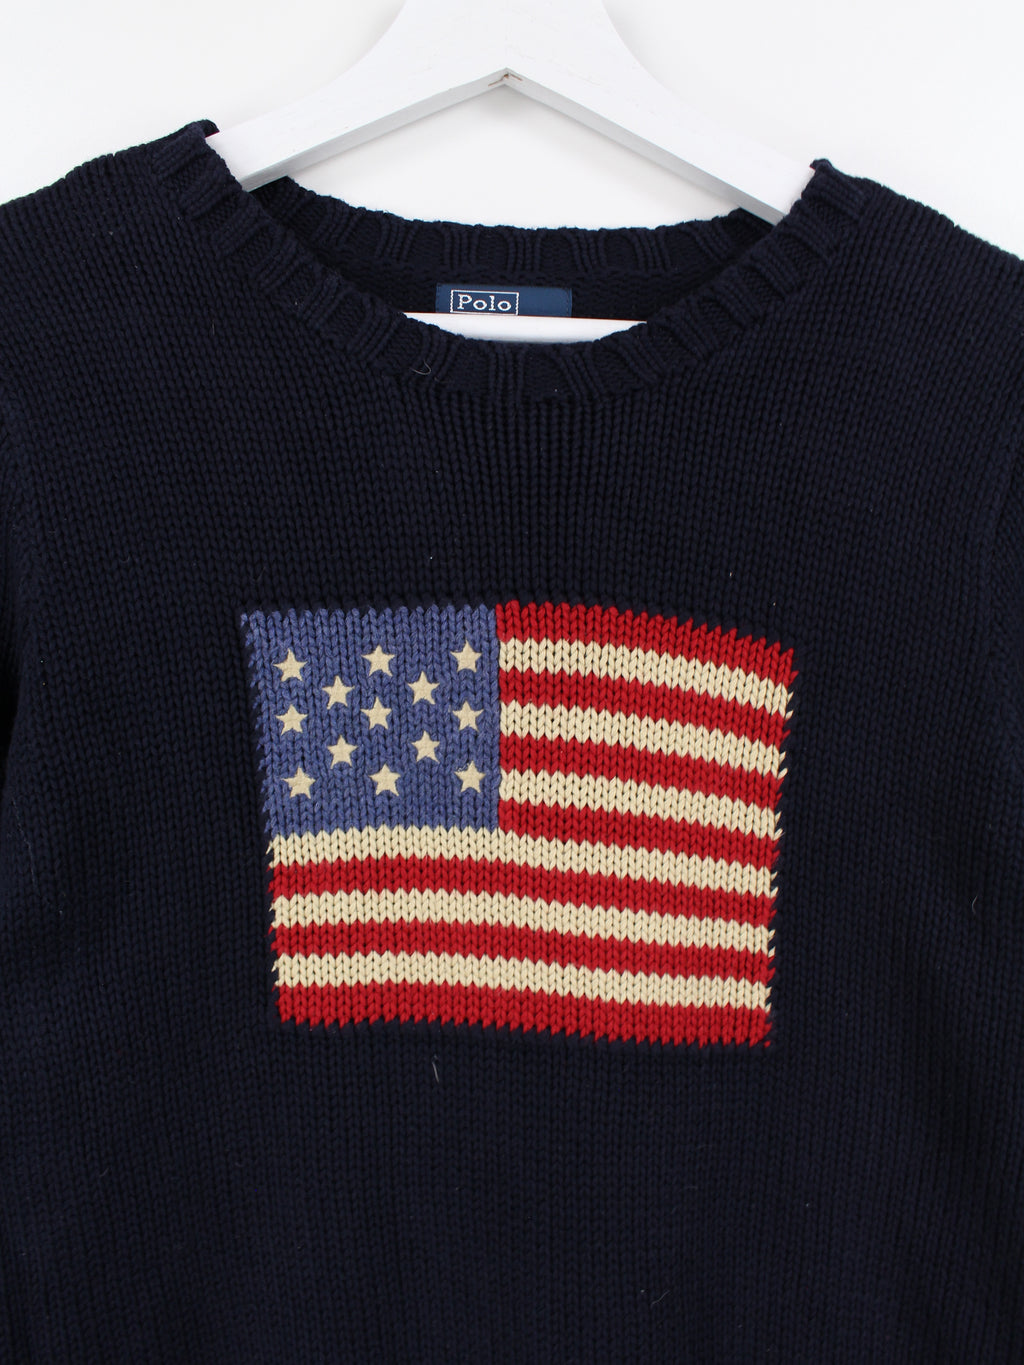 Lotto Tape Trainingsjacke Rot L